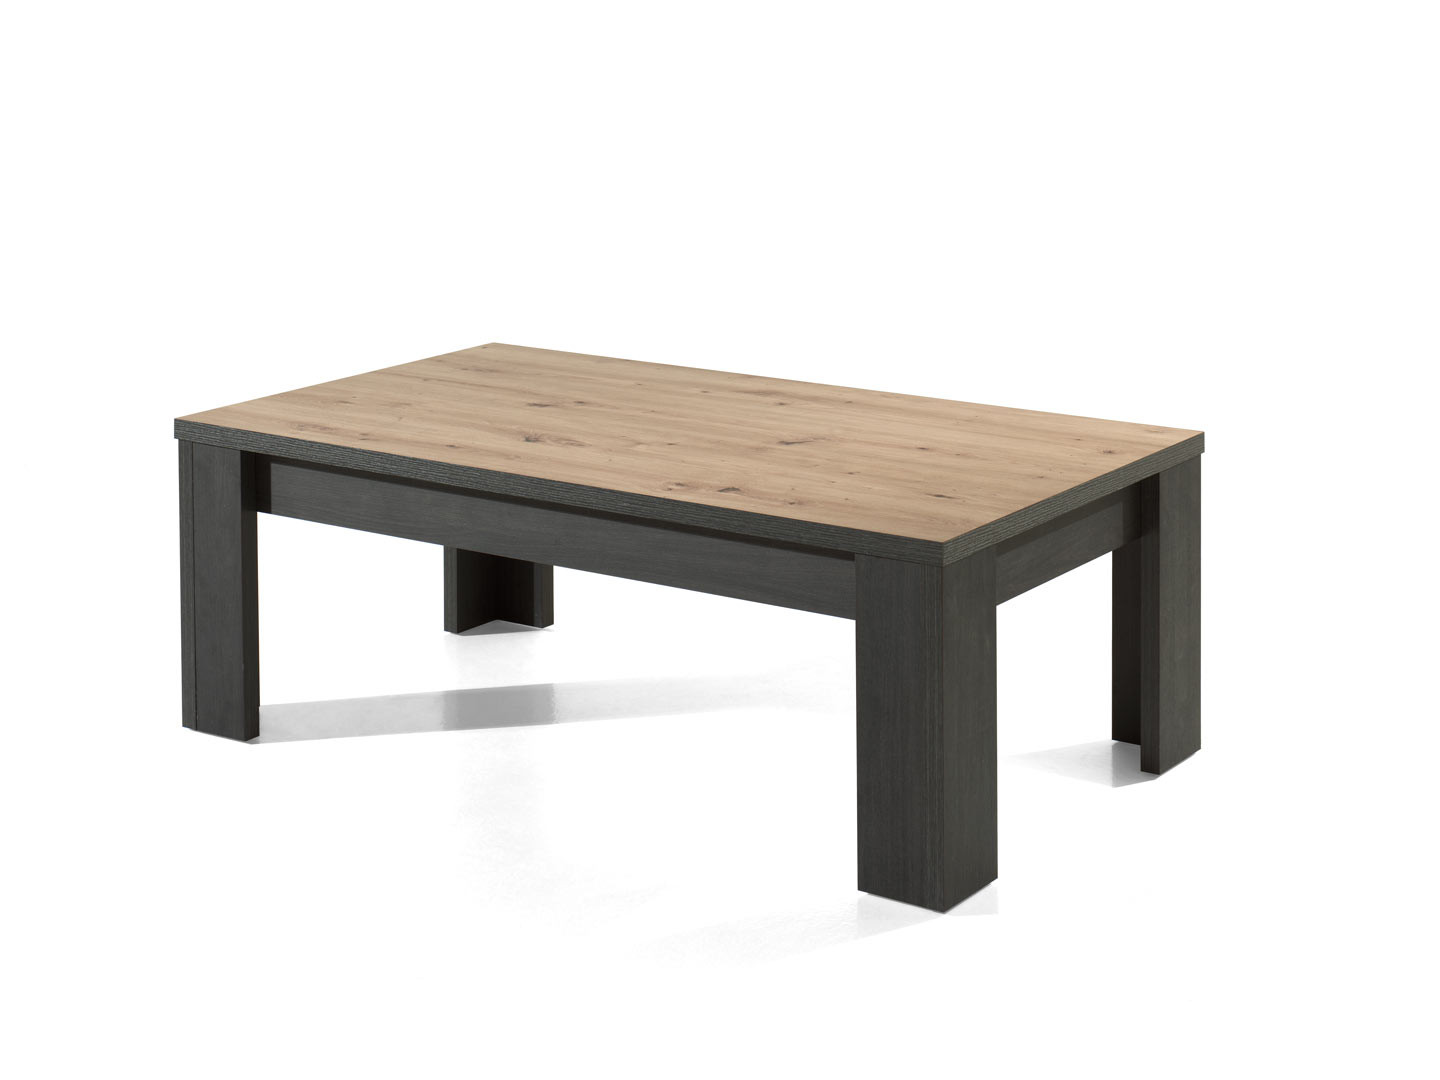 Table basse industrielle chêne/anthracite Loic